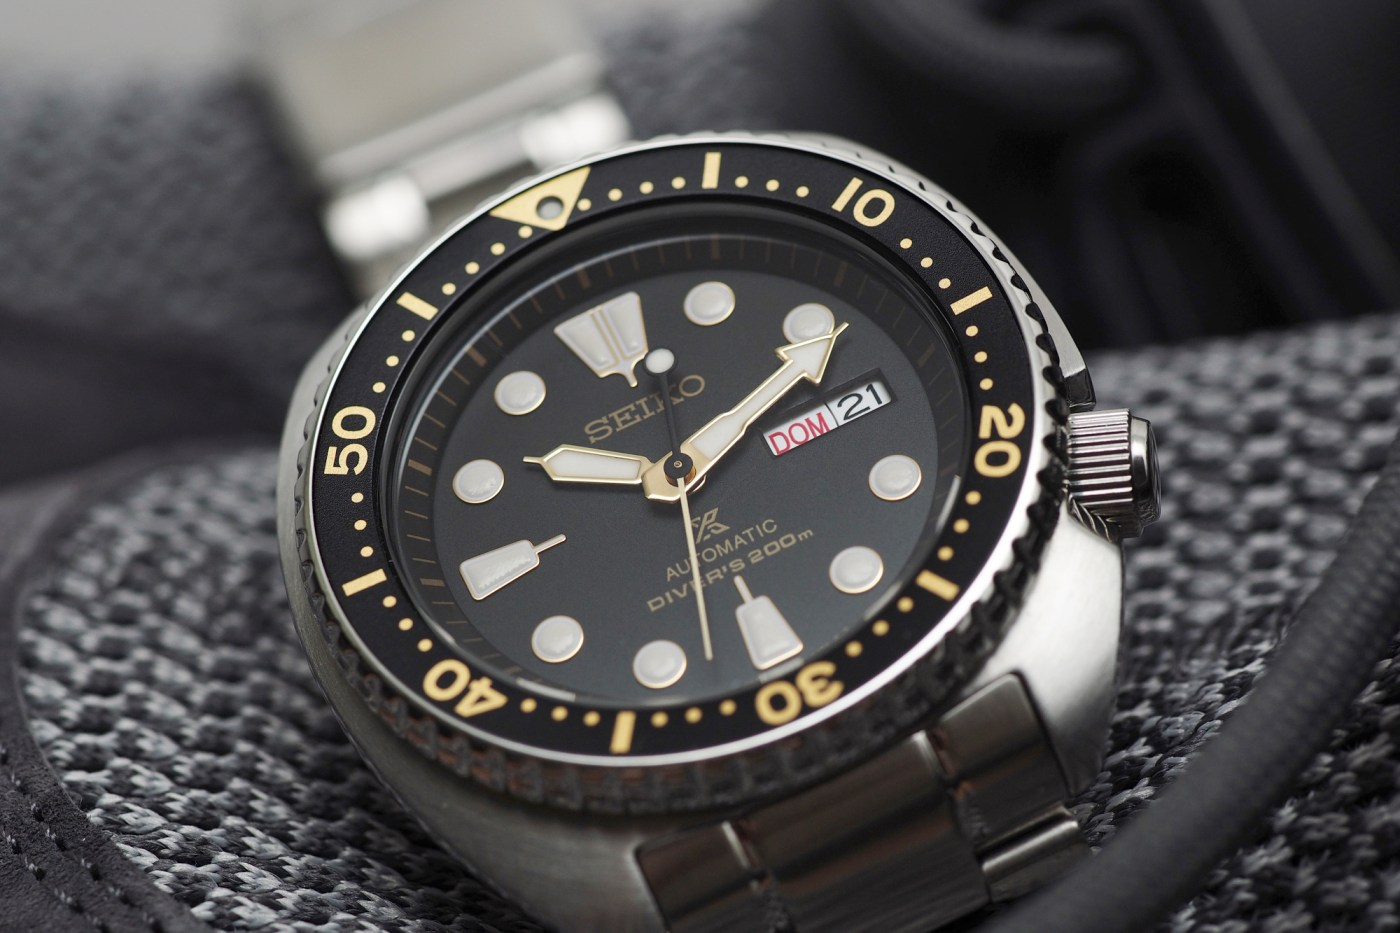 Seiko Turtle Dive watch